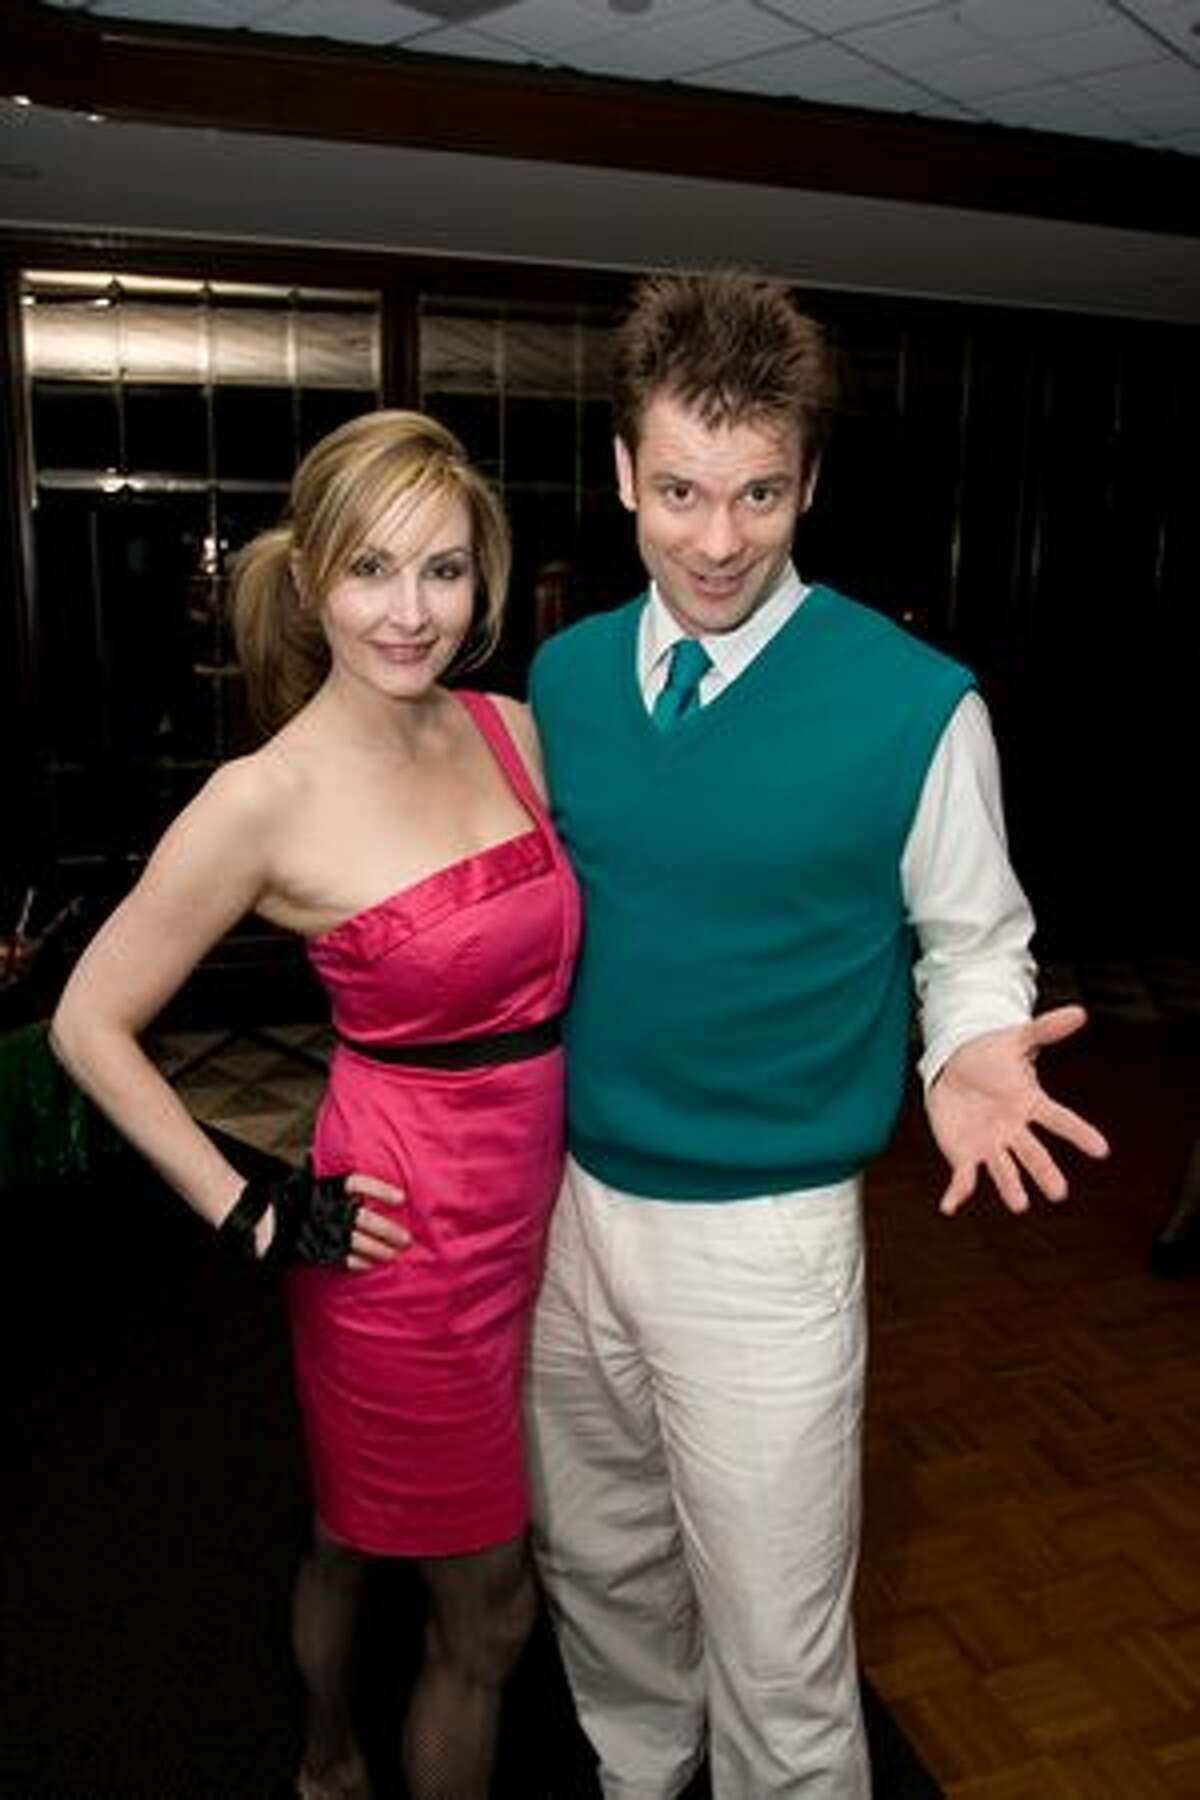 Dawn Hunter and Eric Valpy at the '80s Prom Night party at the Columbia Tower Club. (Humberto Martinez / seattlepi.com)